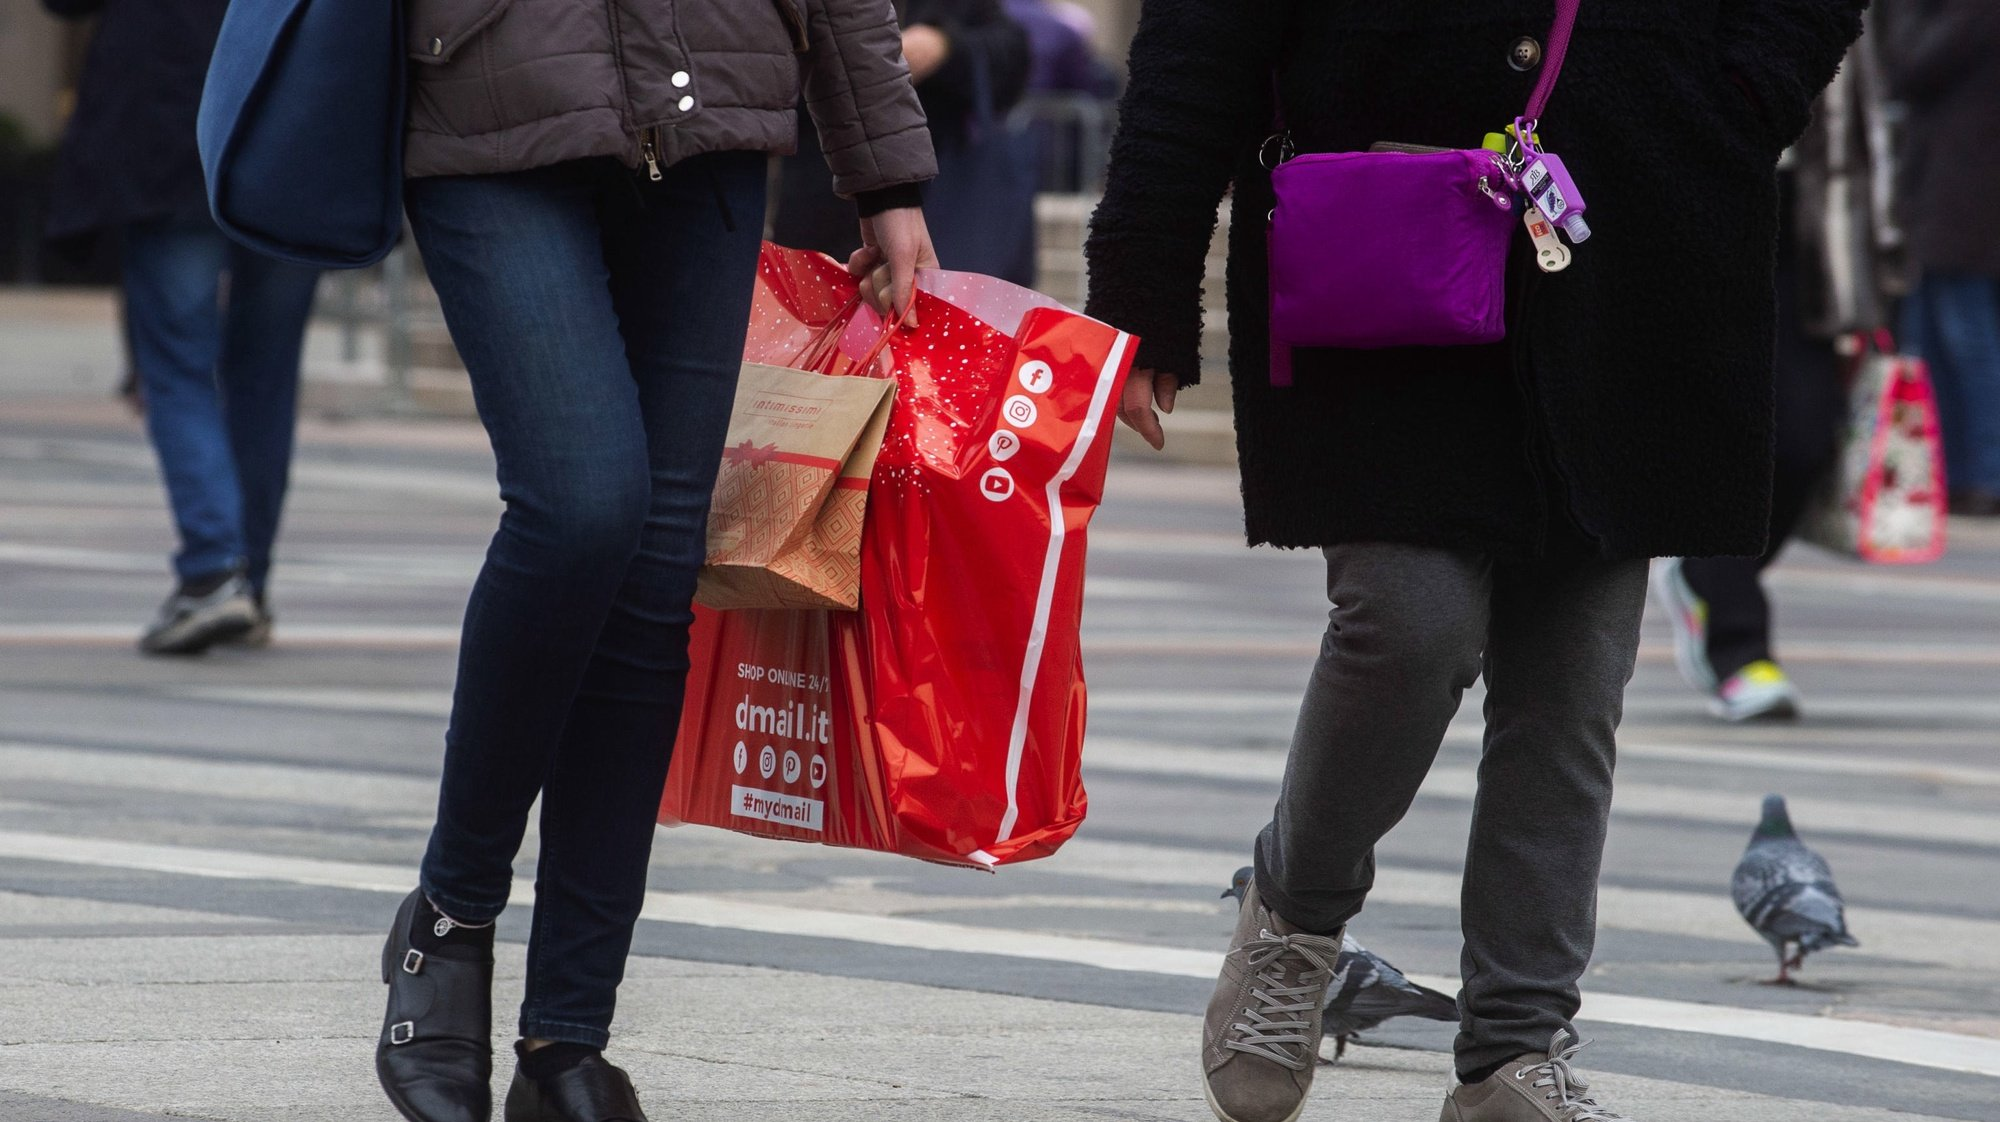 epa08890252 Shoppers walk with bags in the center of Milan as they shop ahead of the Christmas holidays in Milan, Italy, 17 December 2020.  EPA/ANDREA FASANI